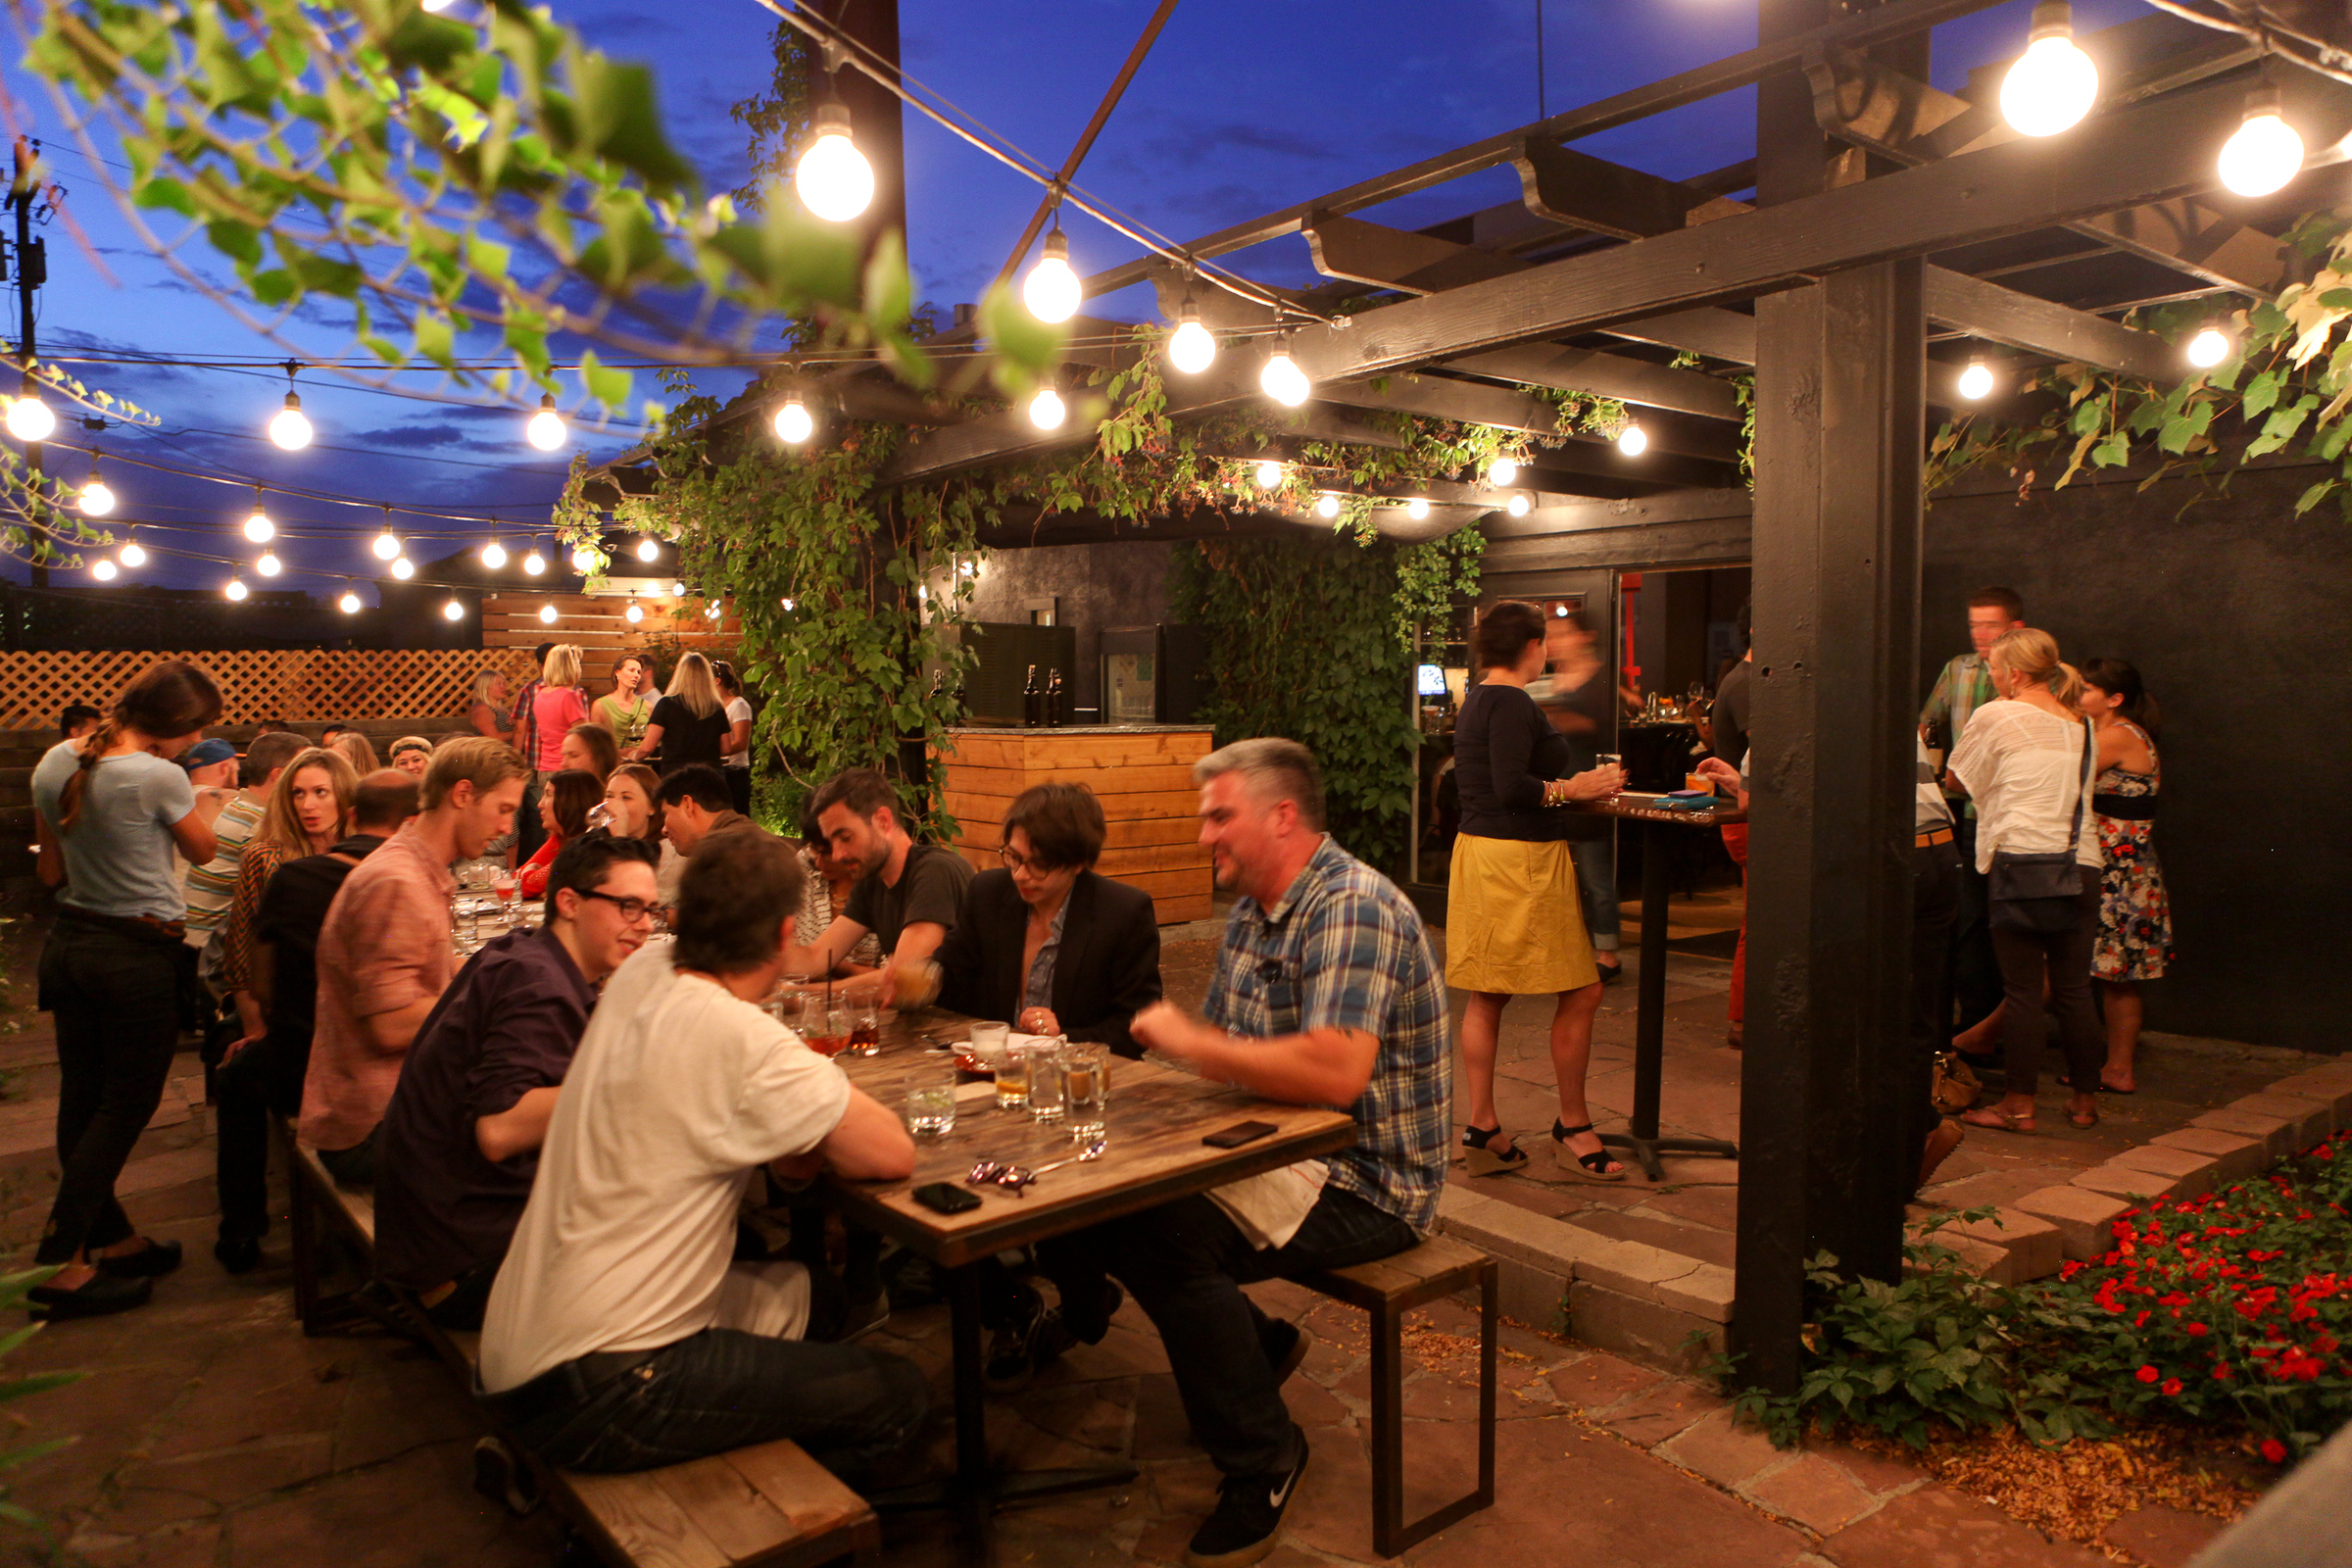 best outdoor dining in denver visit denver - Restaurant Patio